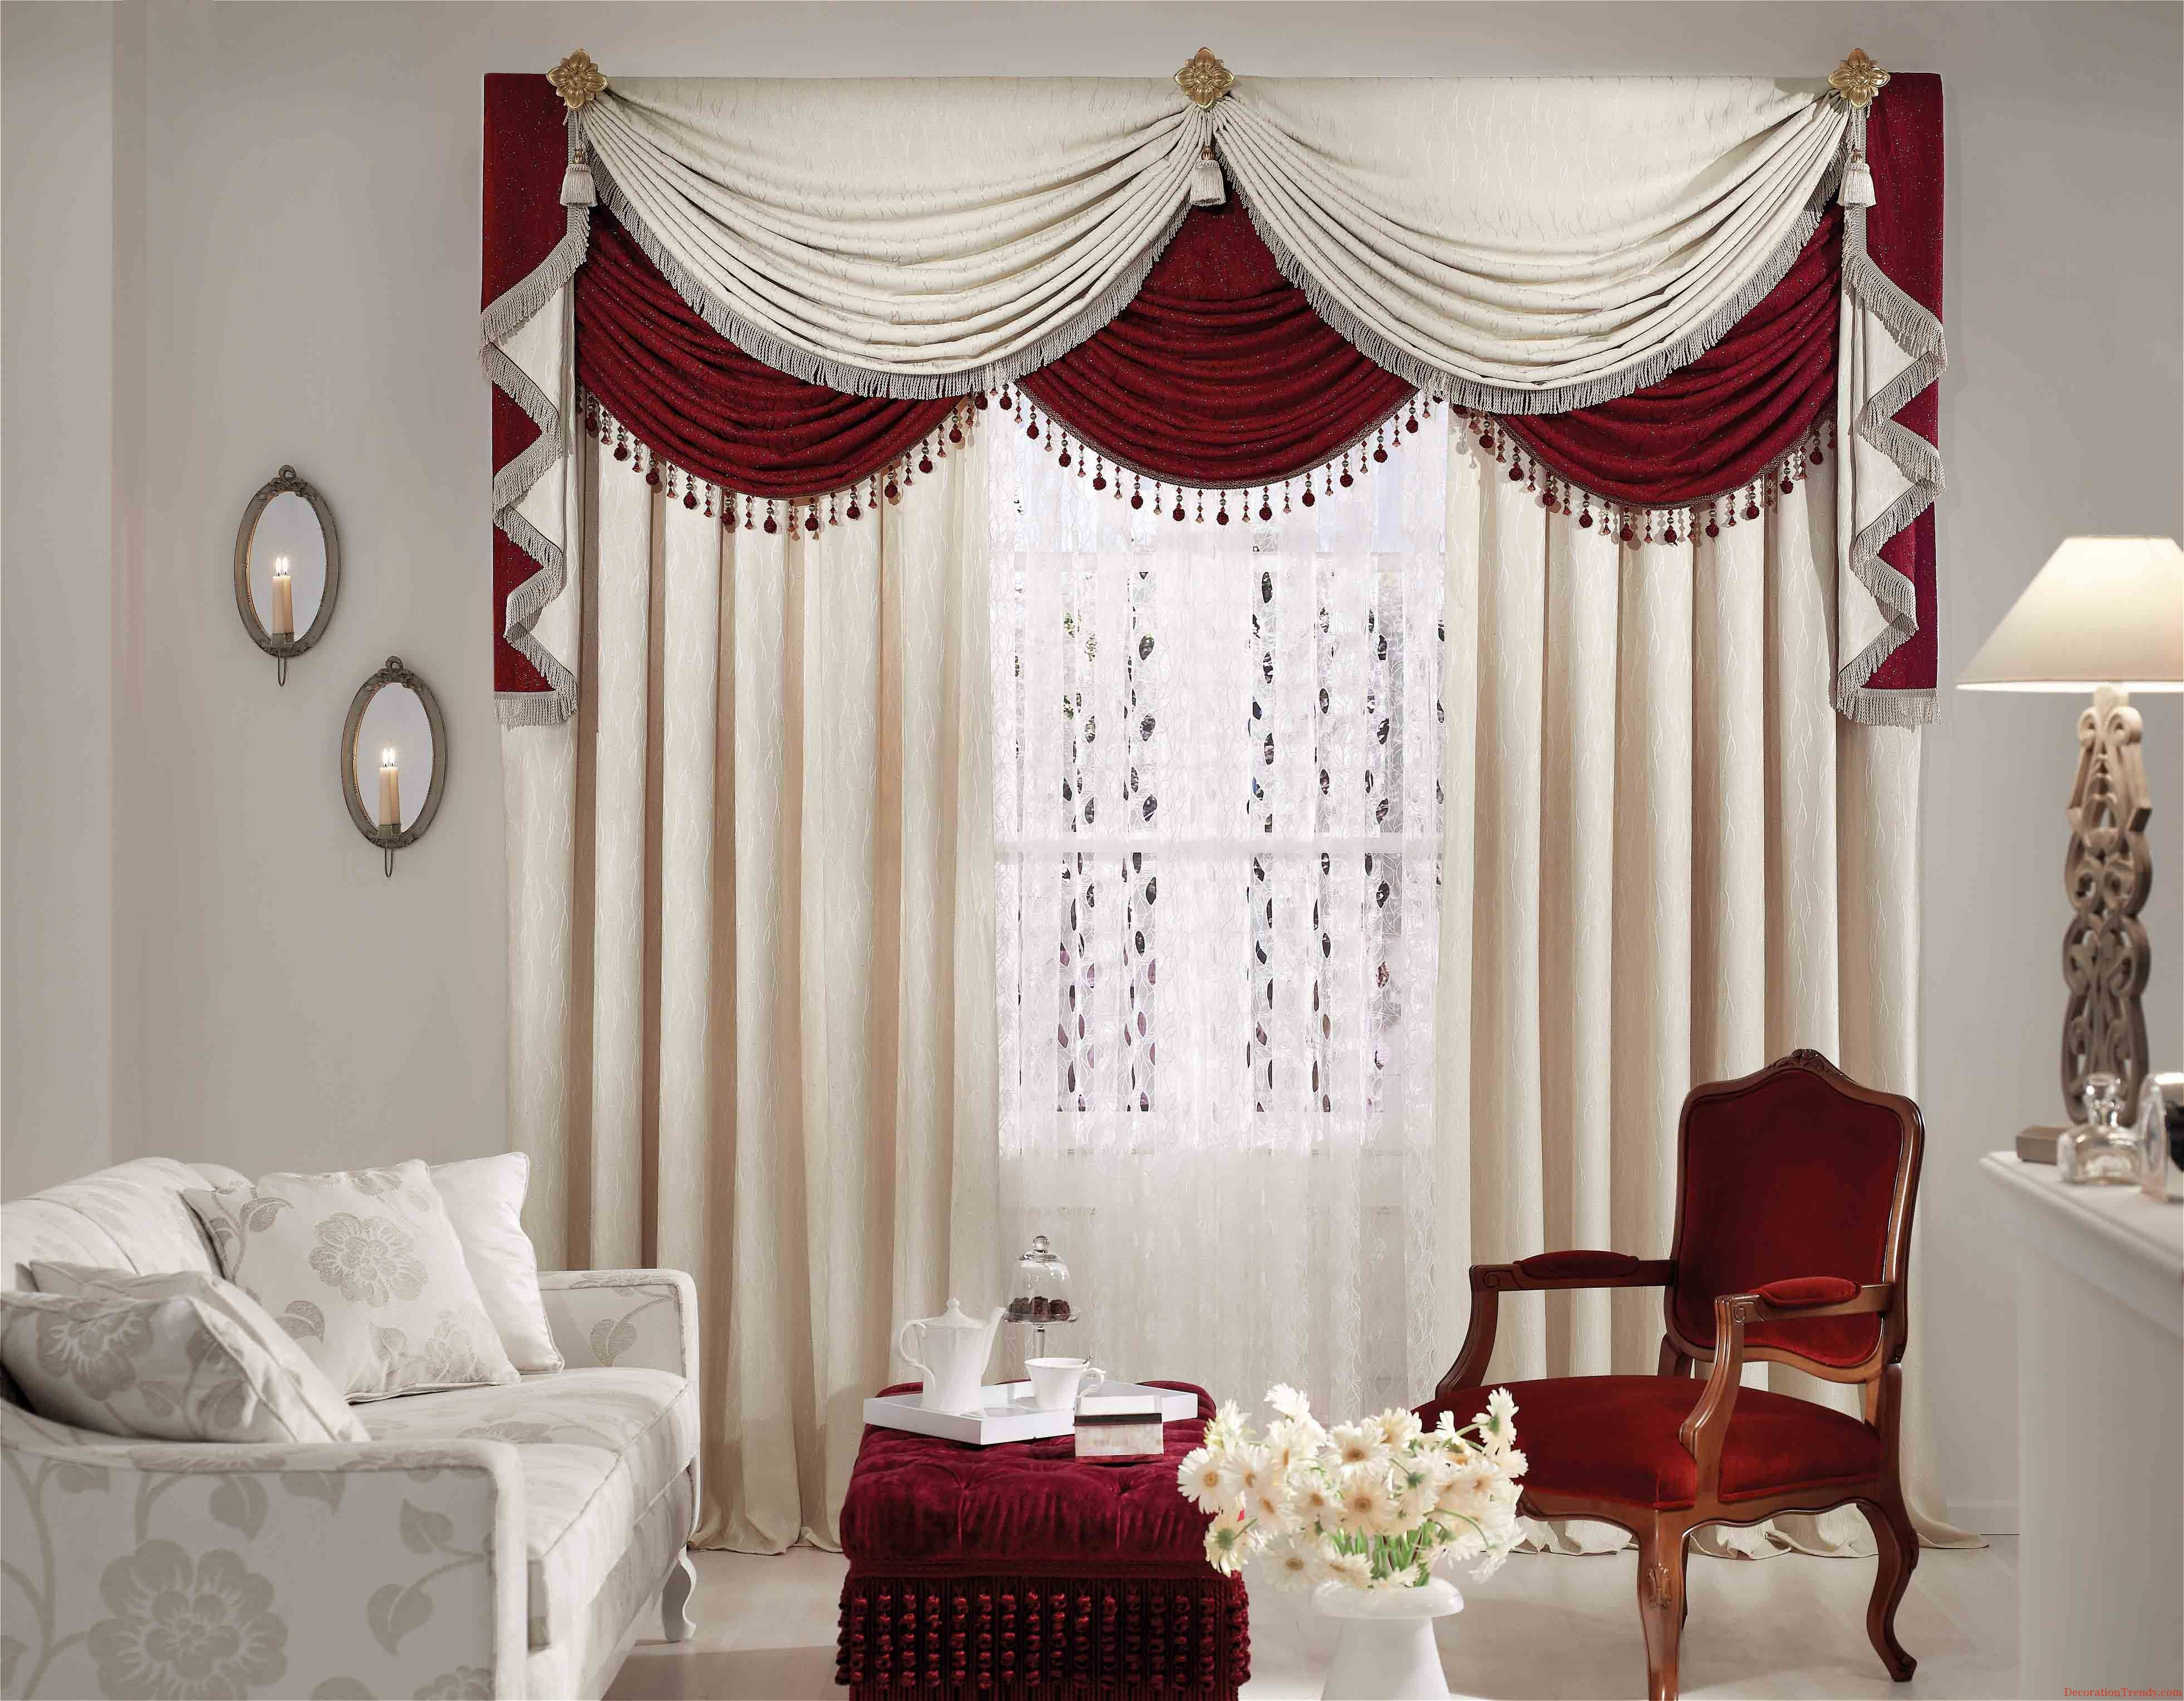 Living Room Curtains Designs Amazing 40 Amazing & Stunning Curtain Design Ideas 2017  Curtain Designs Design Ideas